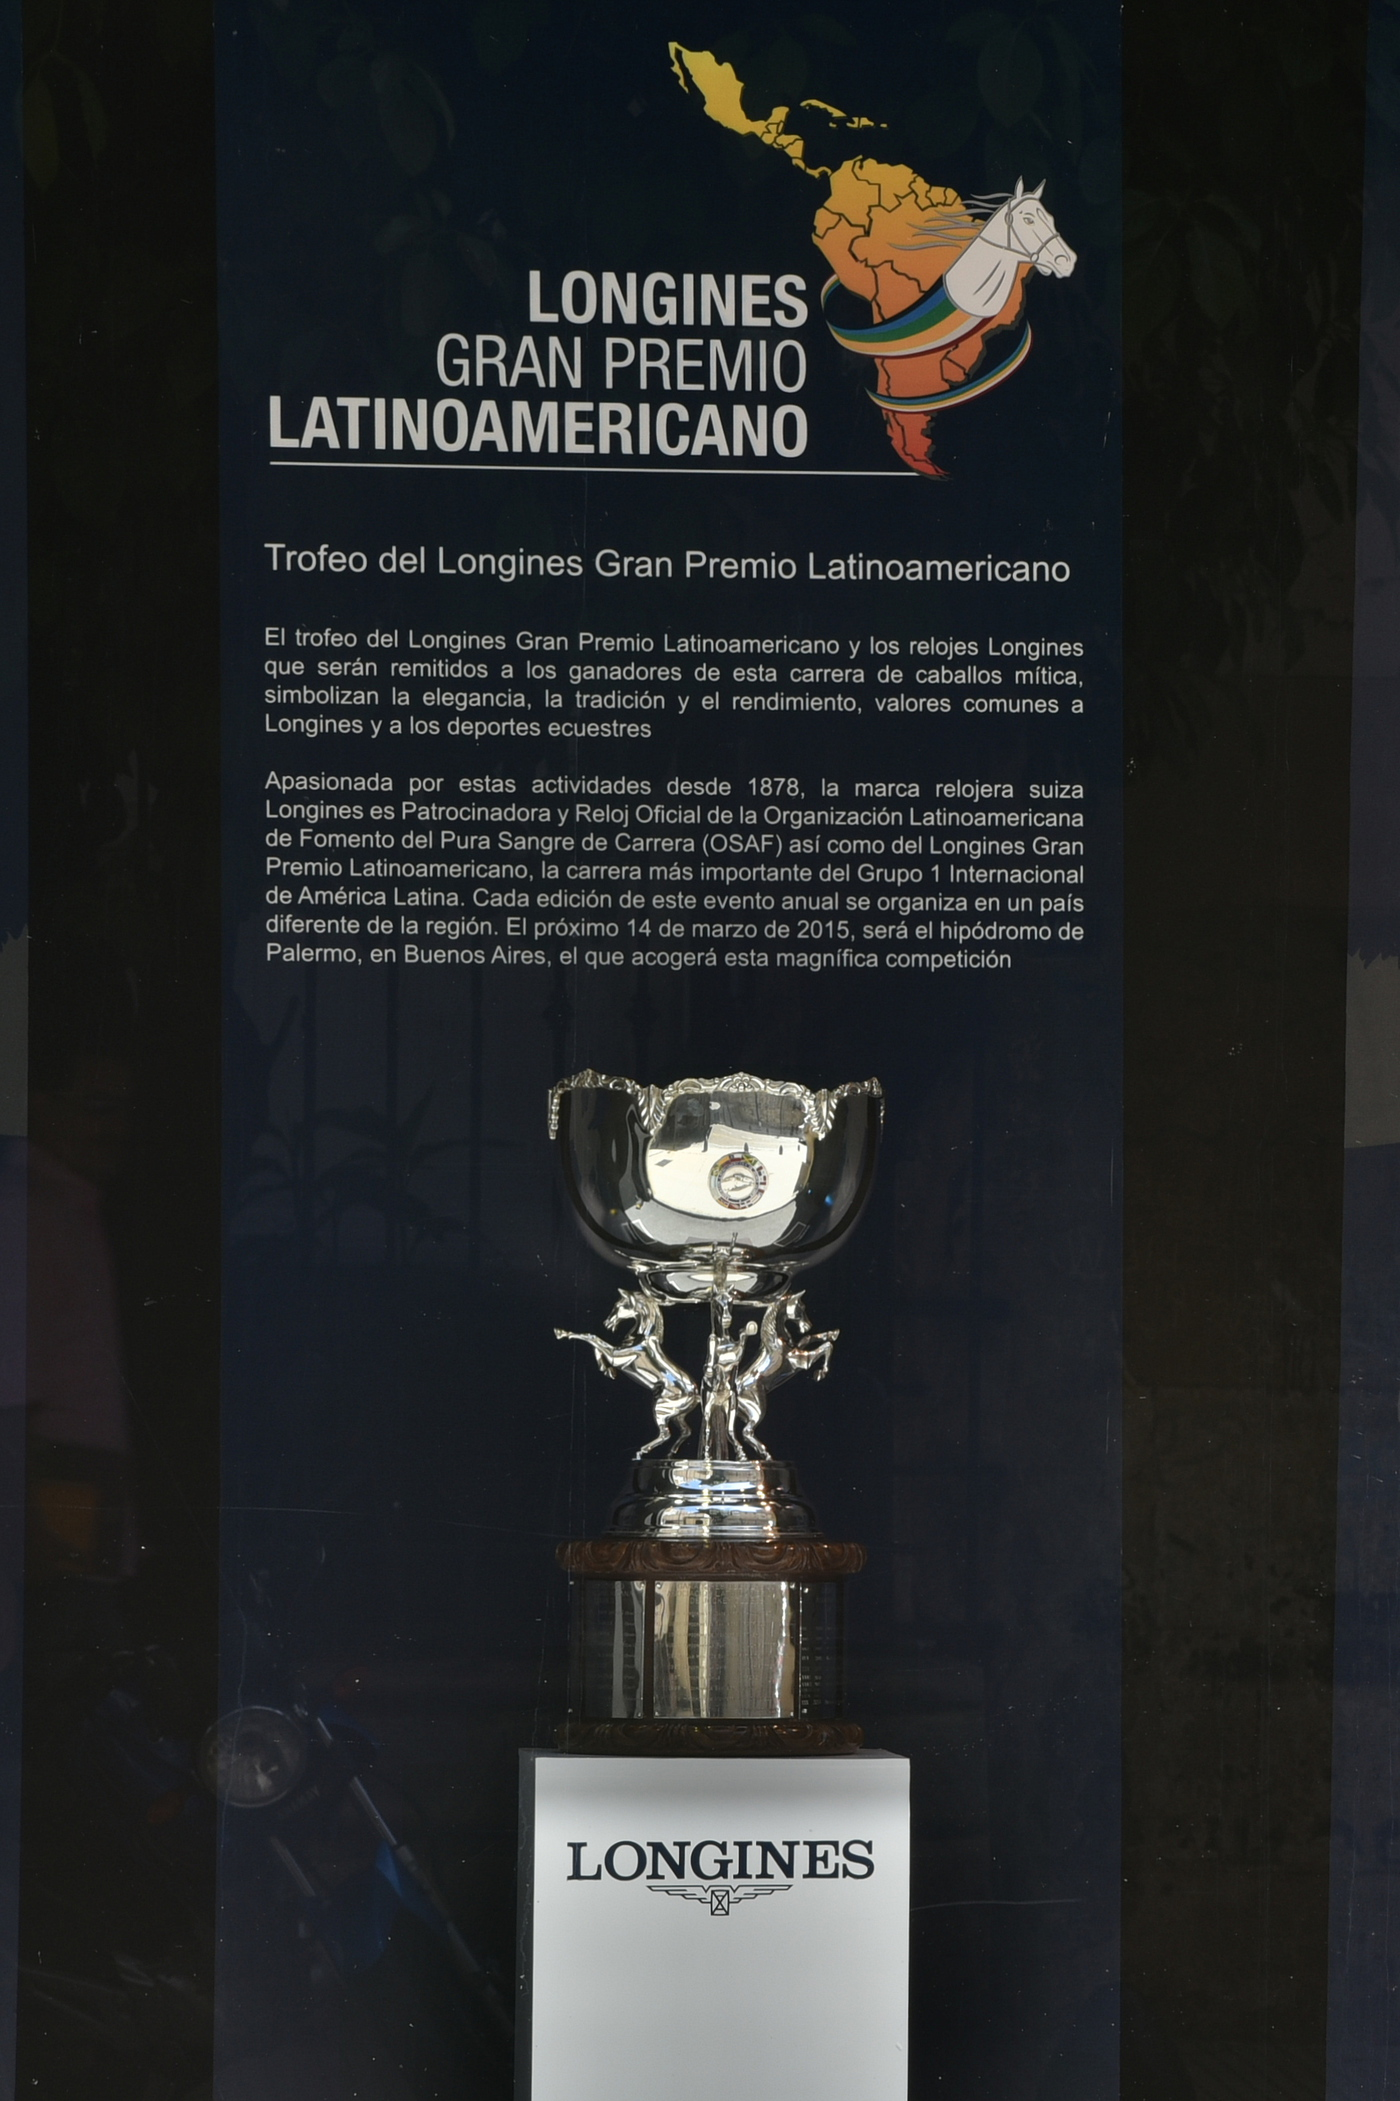 Longines Flat Racing Event: The 2015 Longines Gran Premio Latinoamericano 1